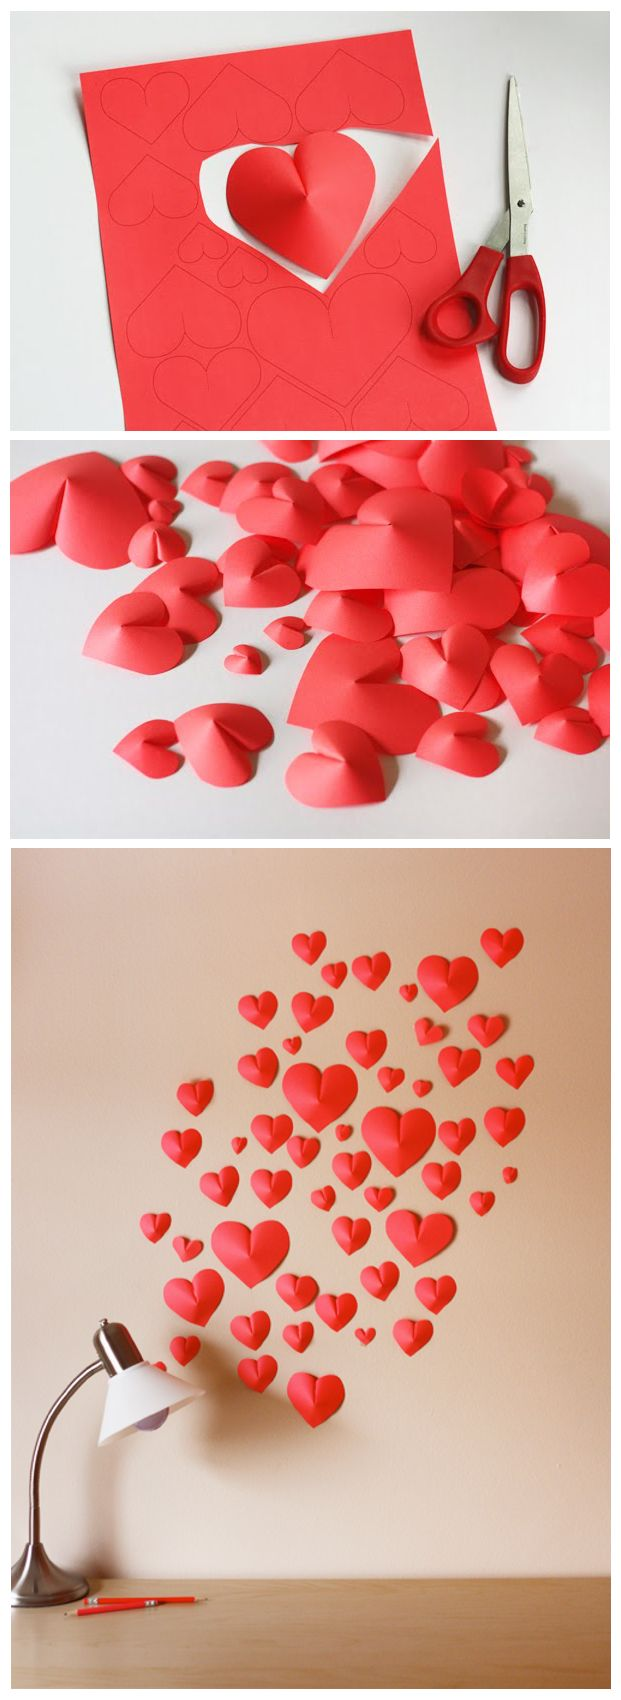 make a wall of simple paper origami hearts find this pin and more on church valentine banquet ideas